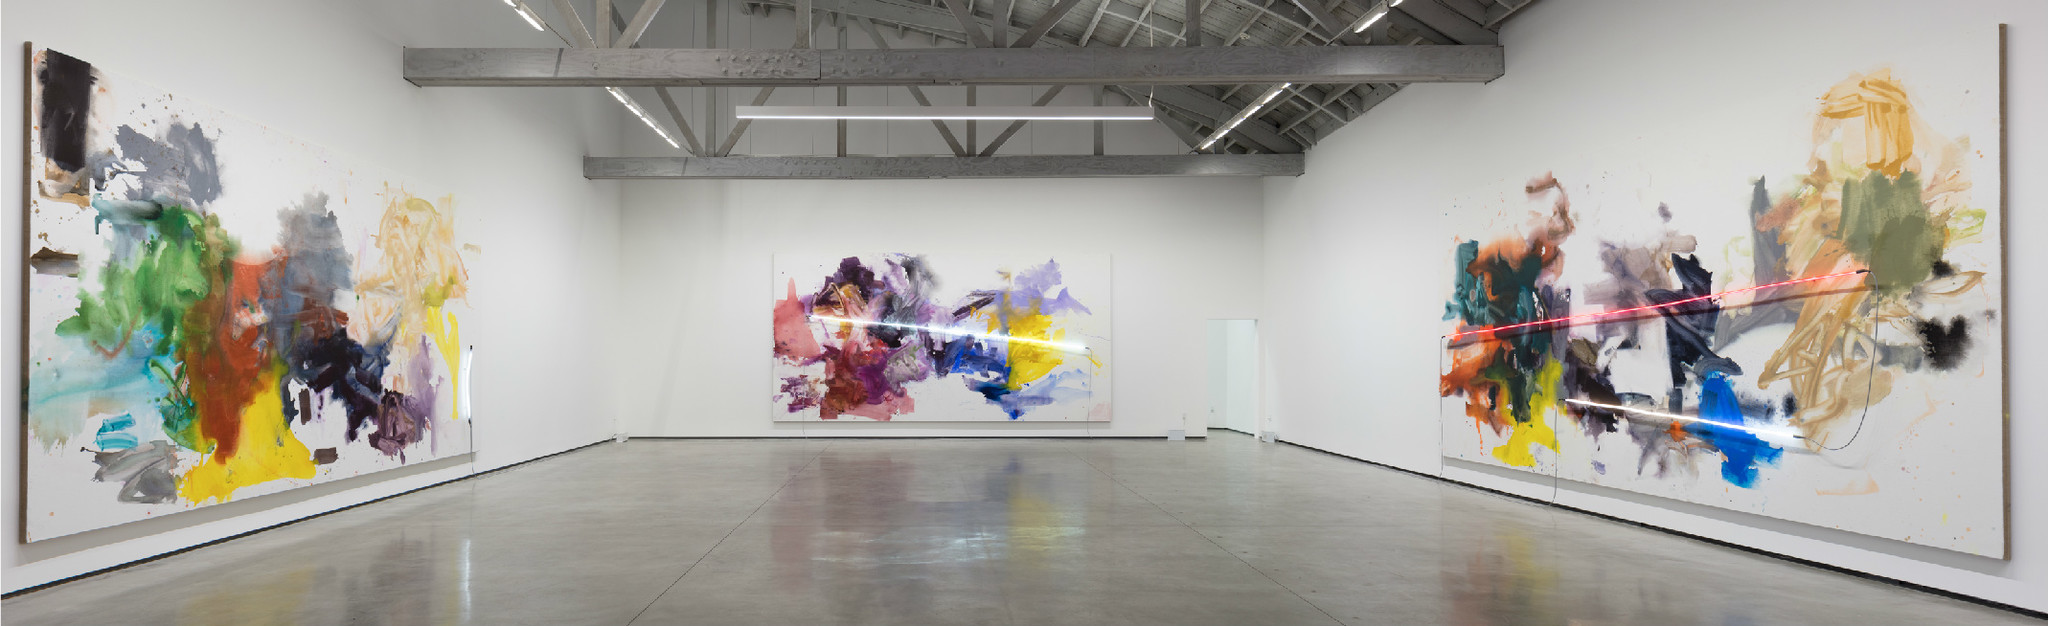 Mary Weatherford's new murals are the largest paintings she has made.